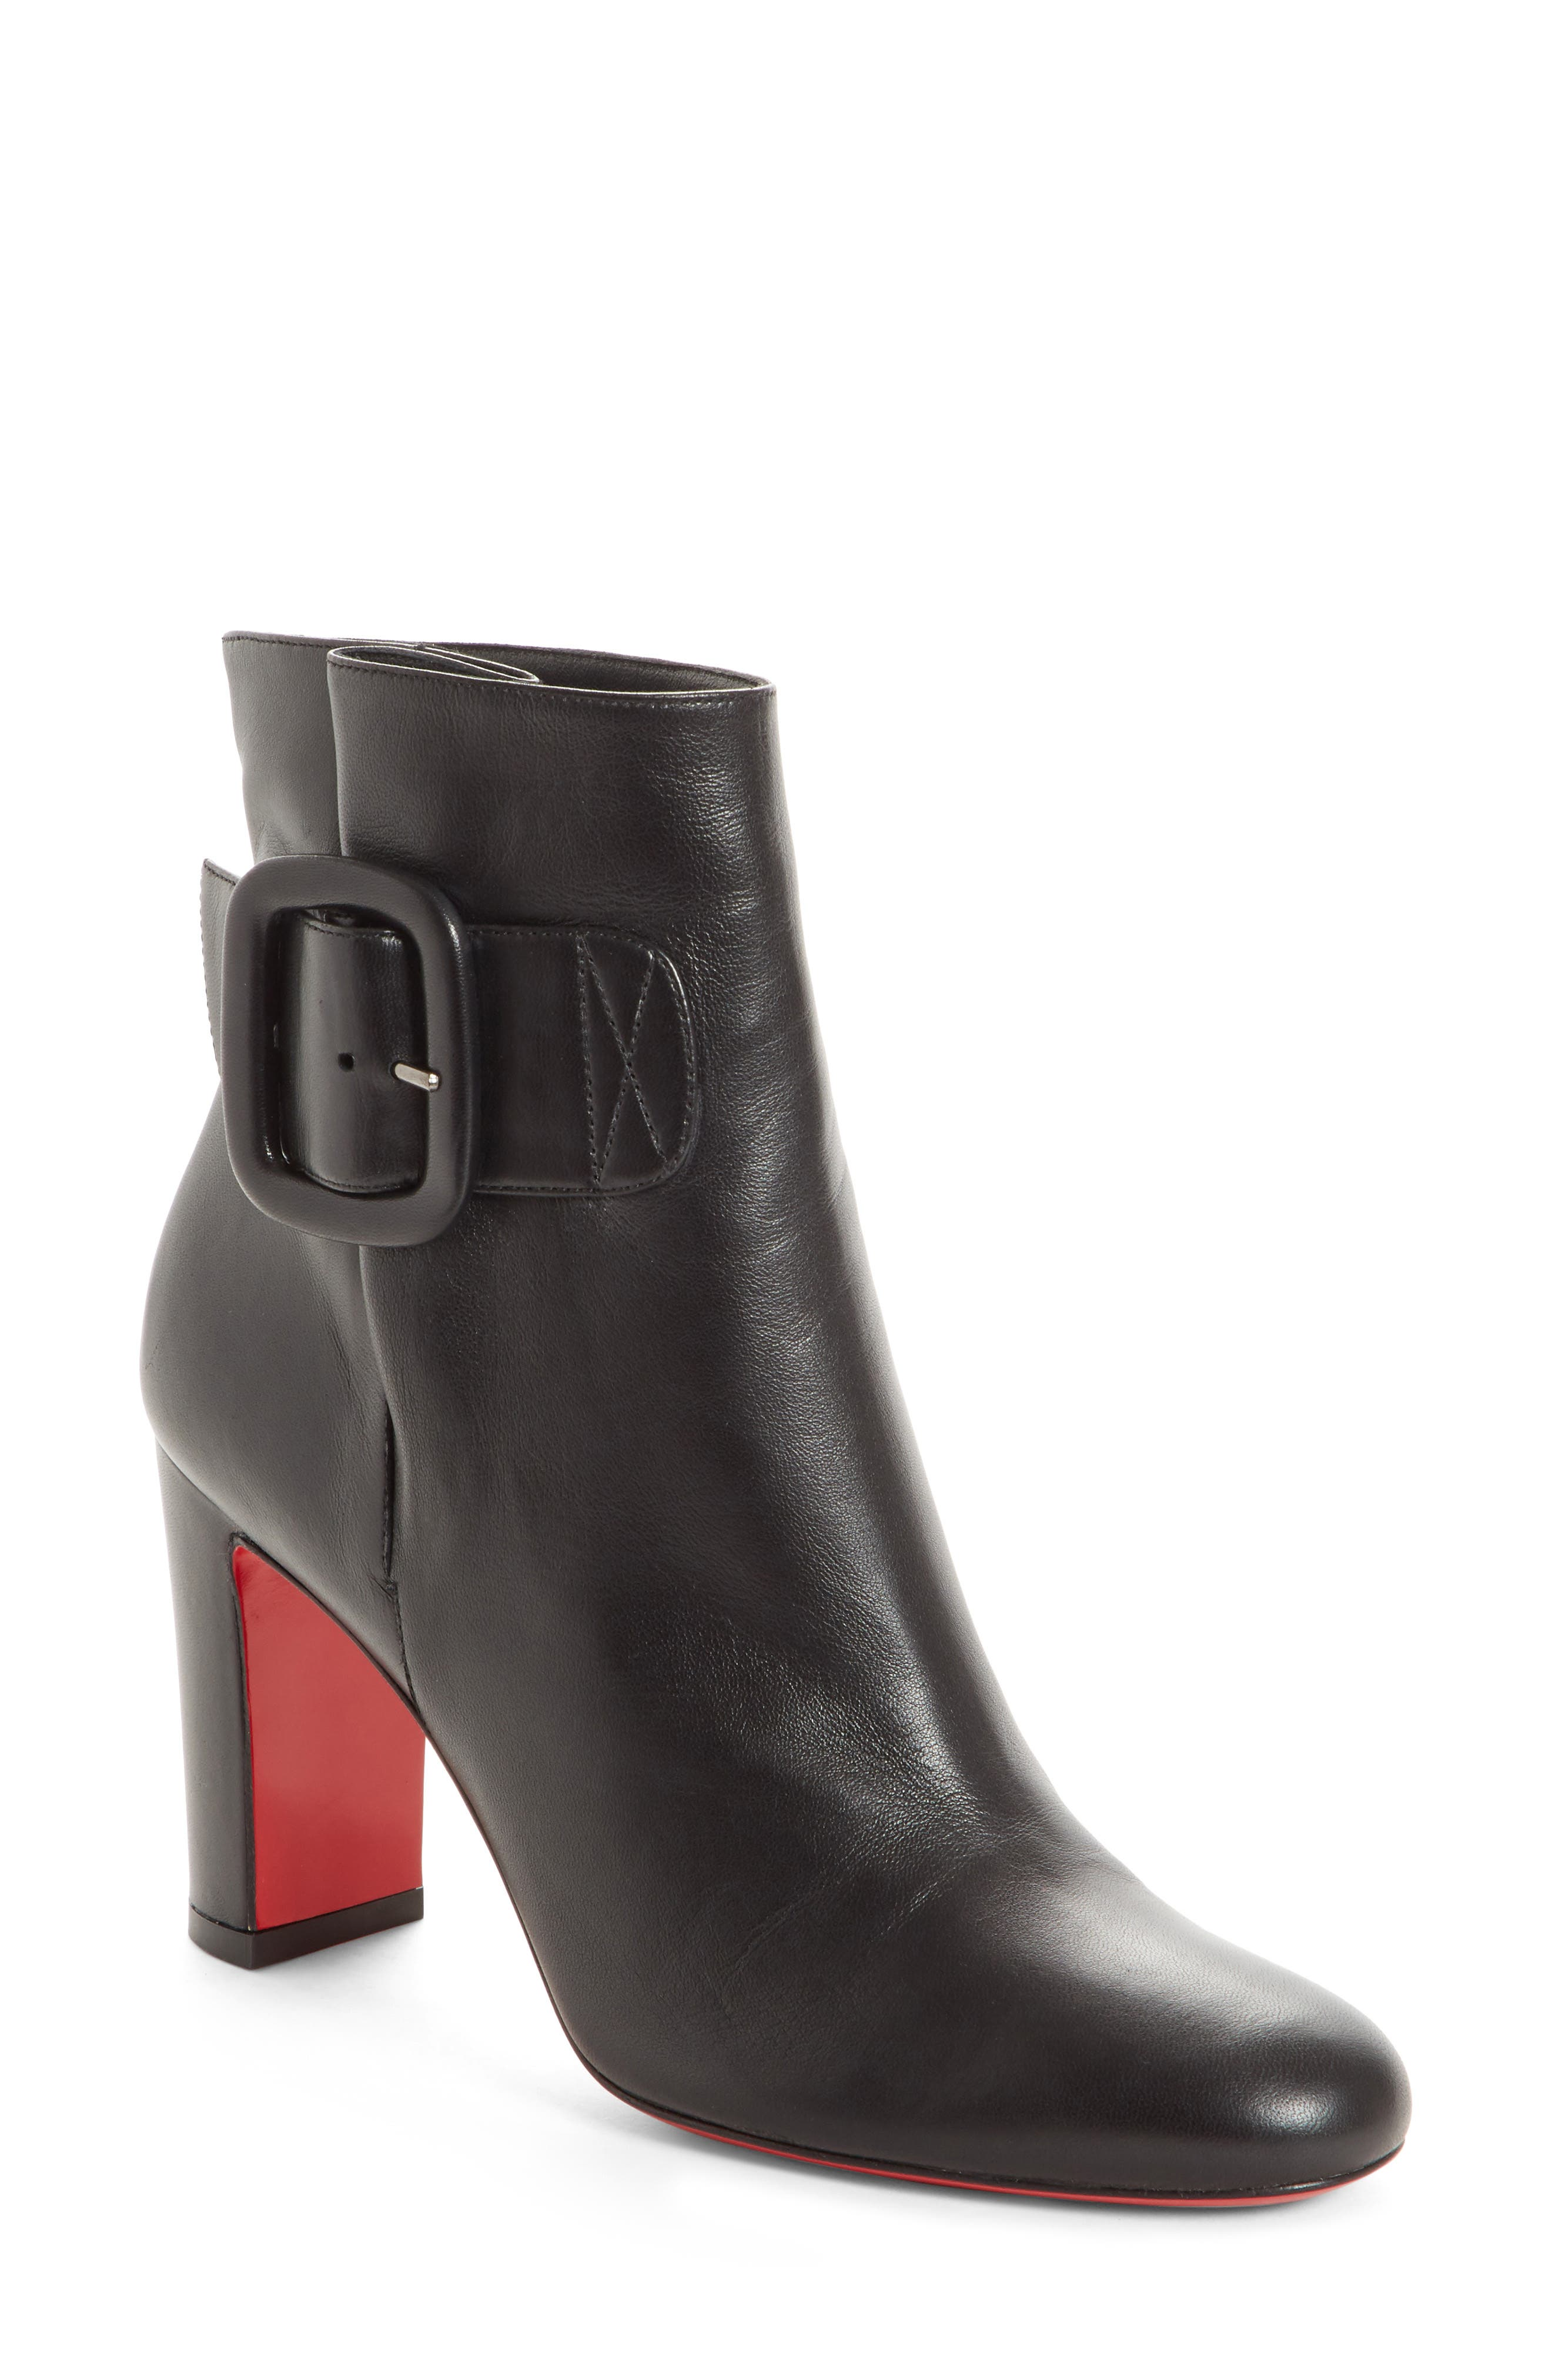 Tres Olivia Napa Leather Buckled Red Sole Booties in Black